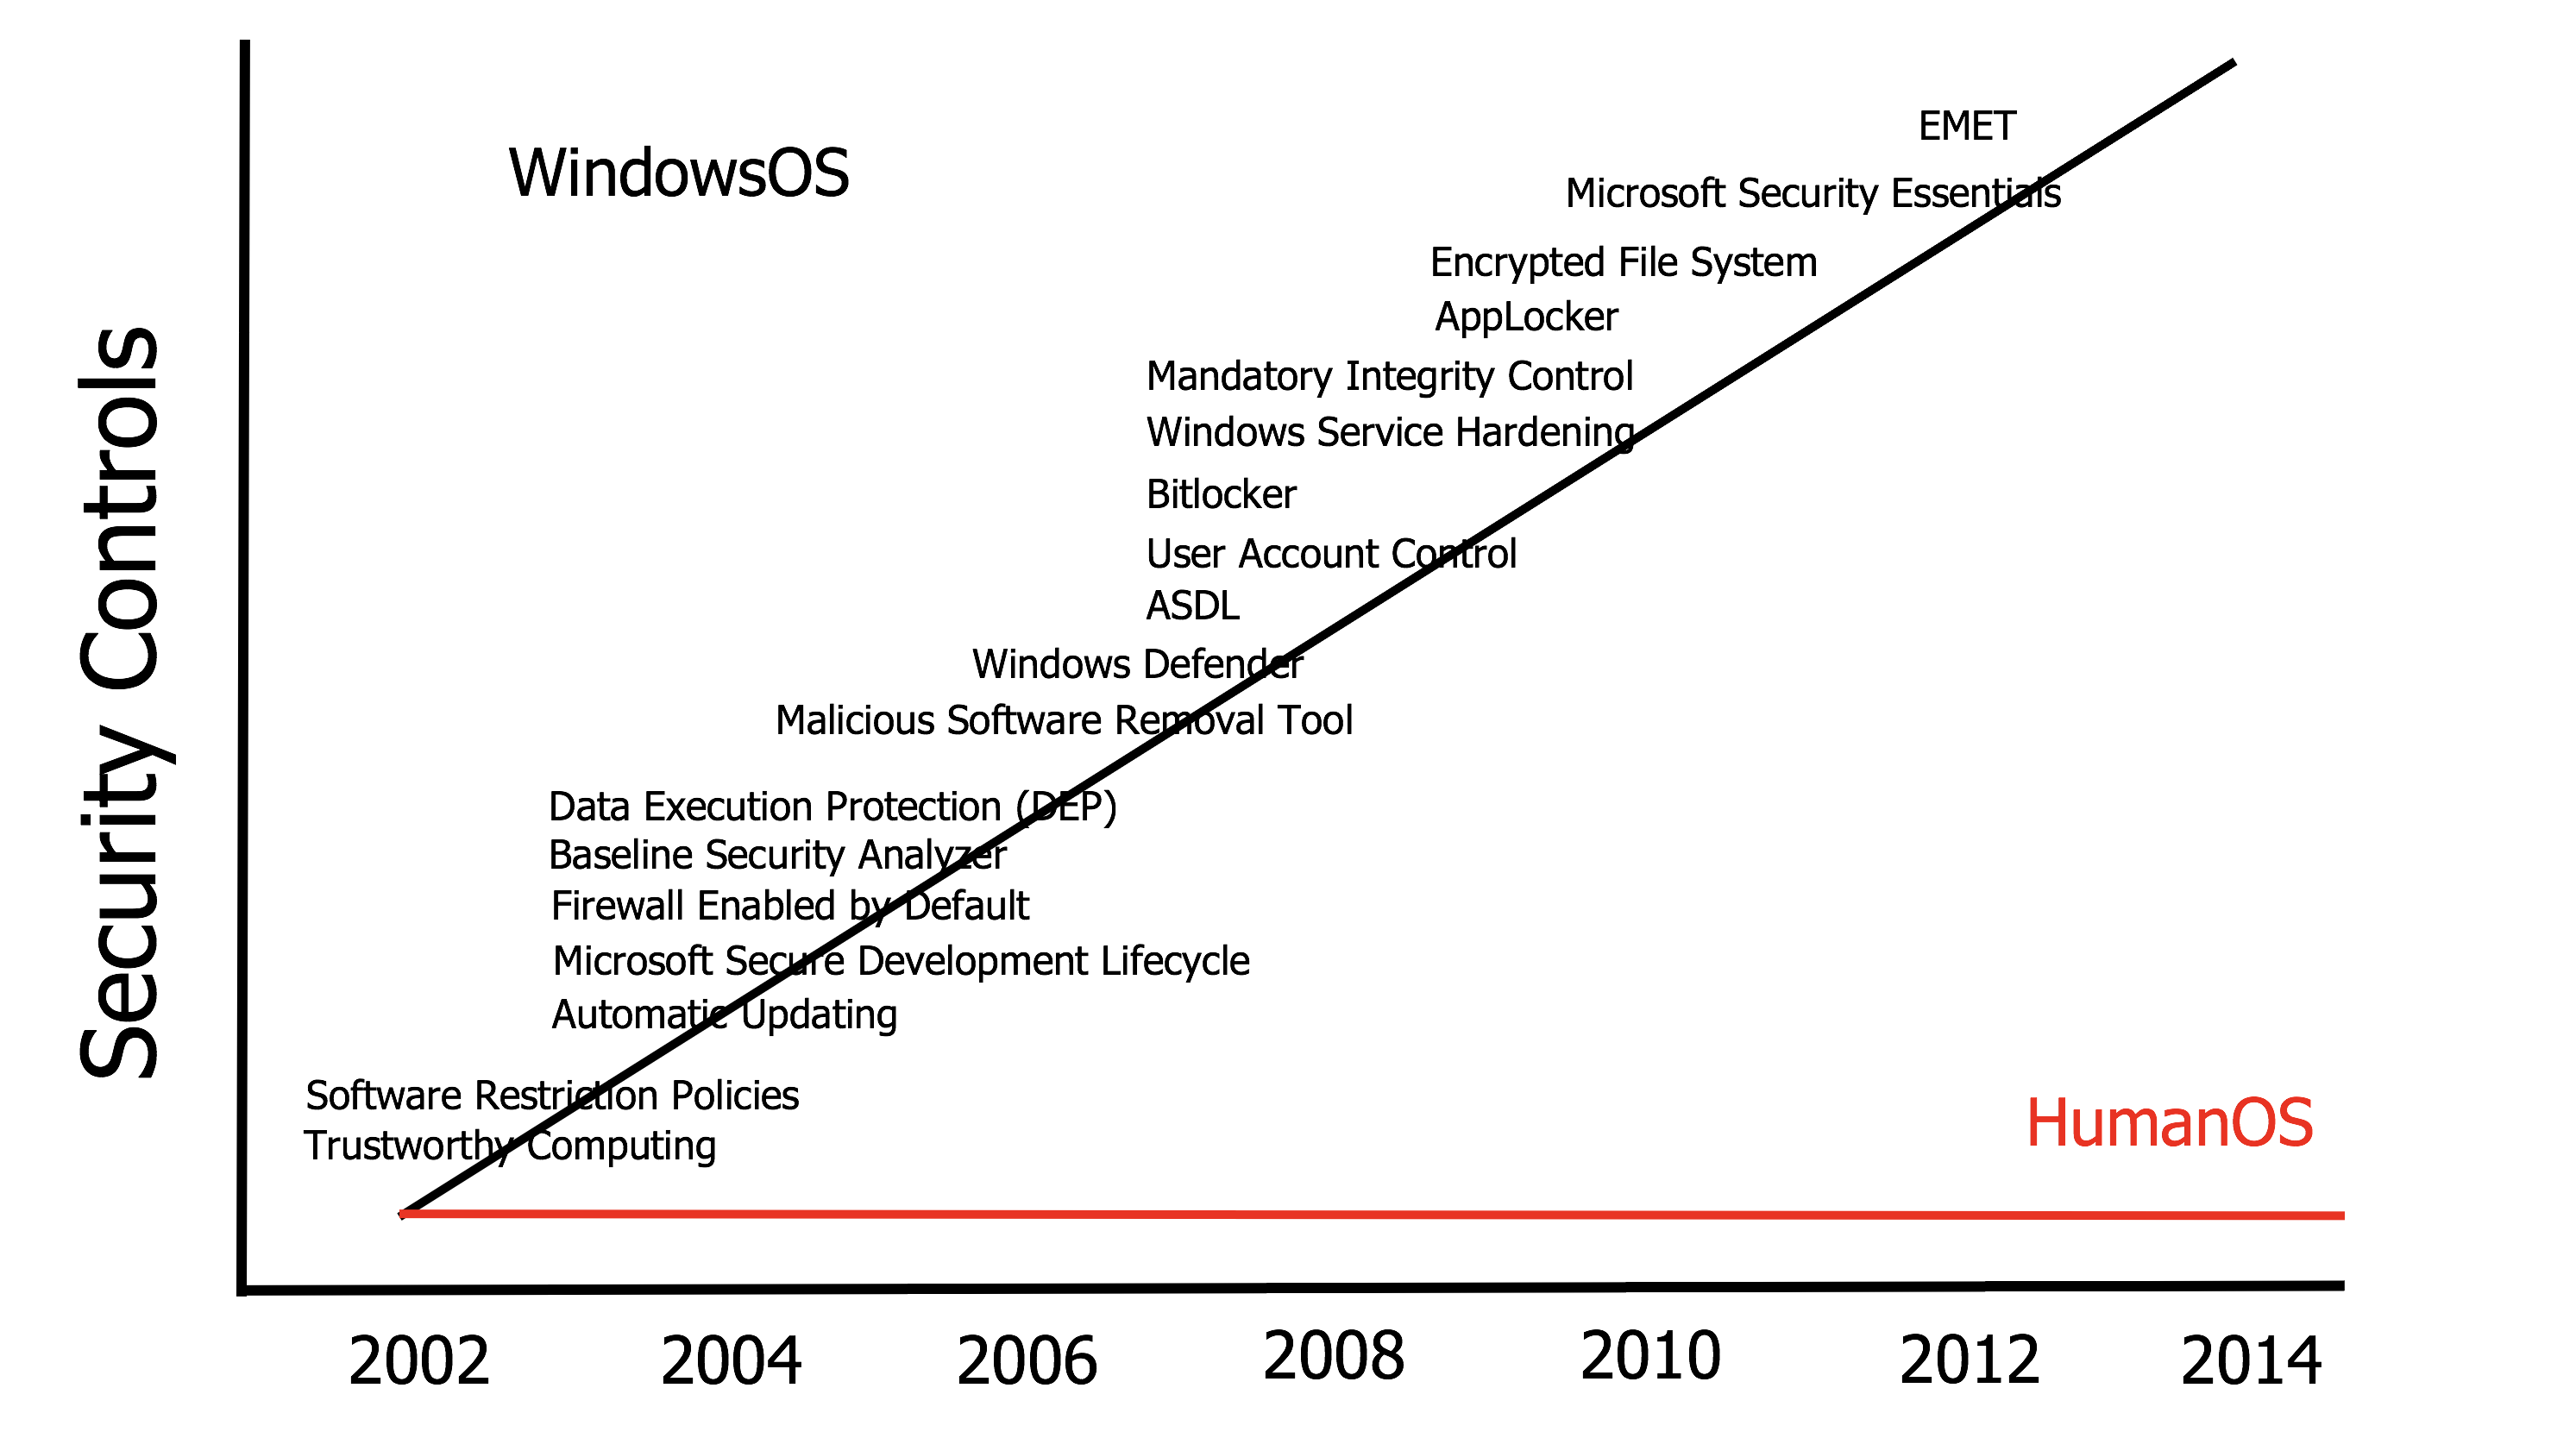 Windows vs Human